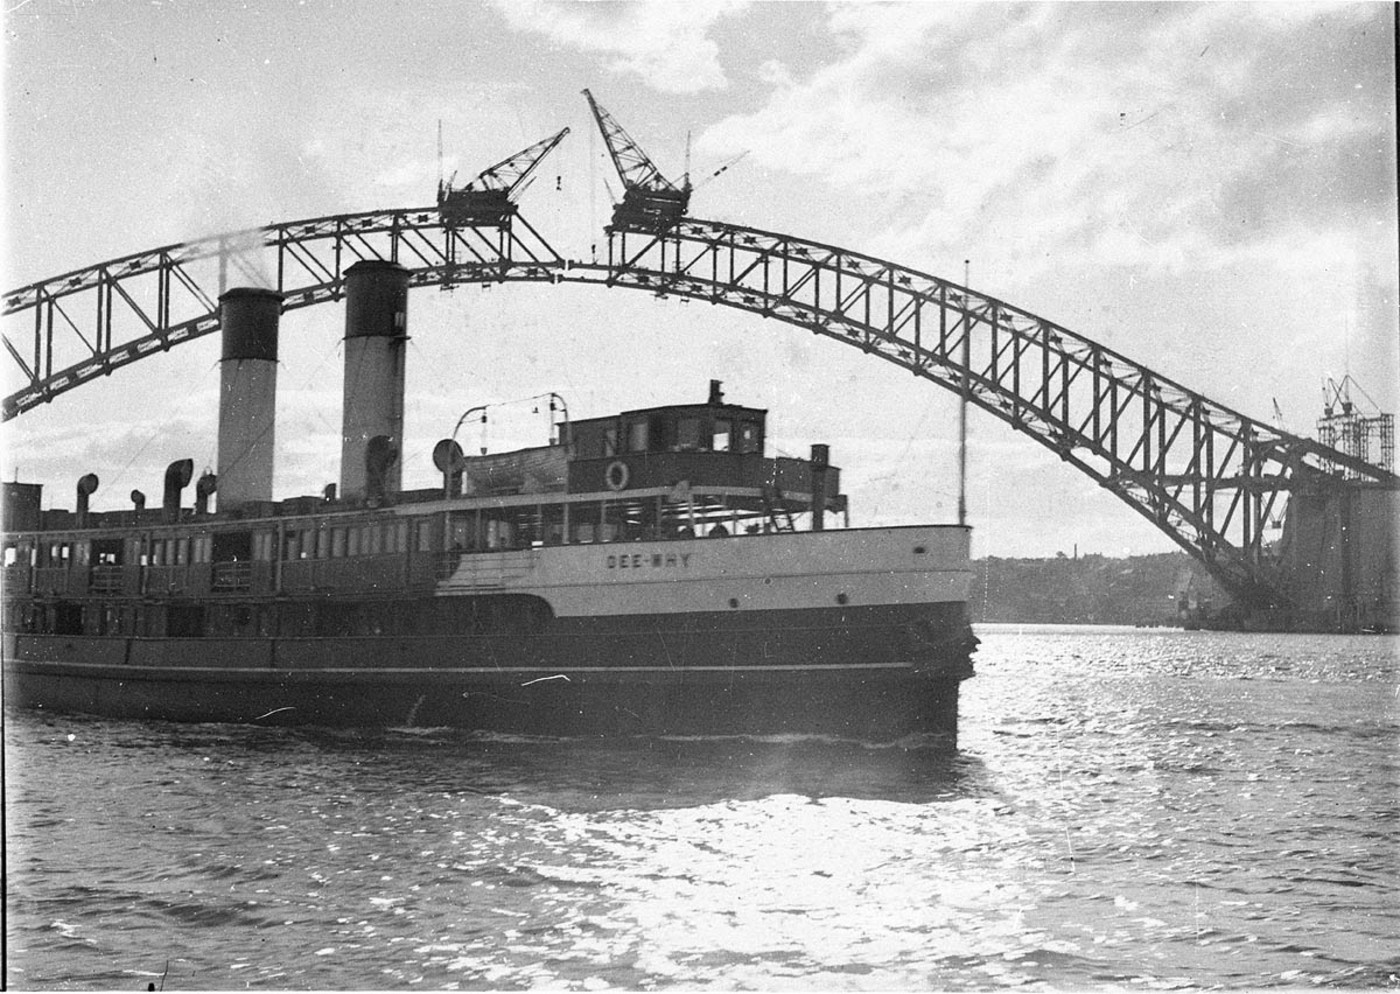 Dee Why in the early 1930s with the Sydney Harbour Bridge under construction Dee Why ferry.jpg